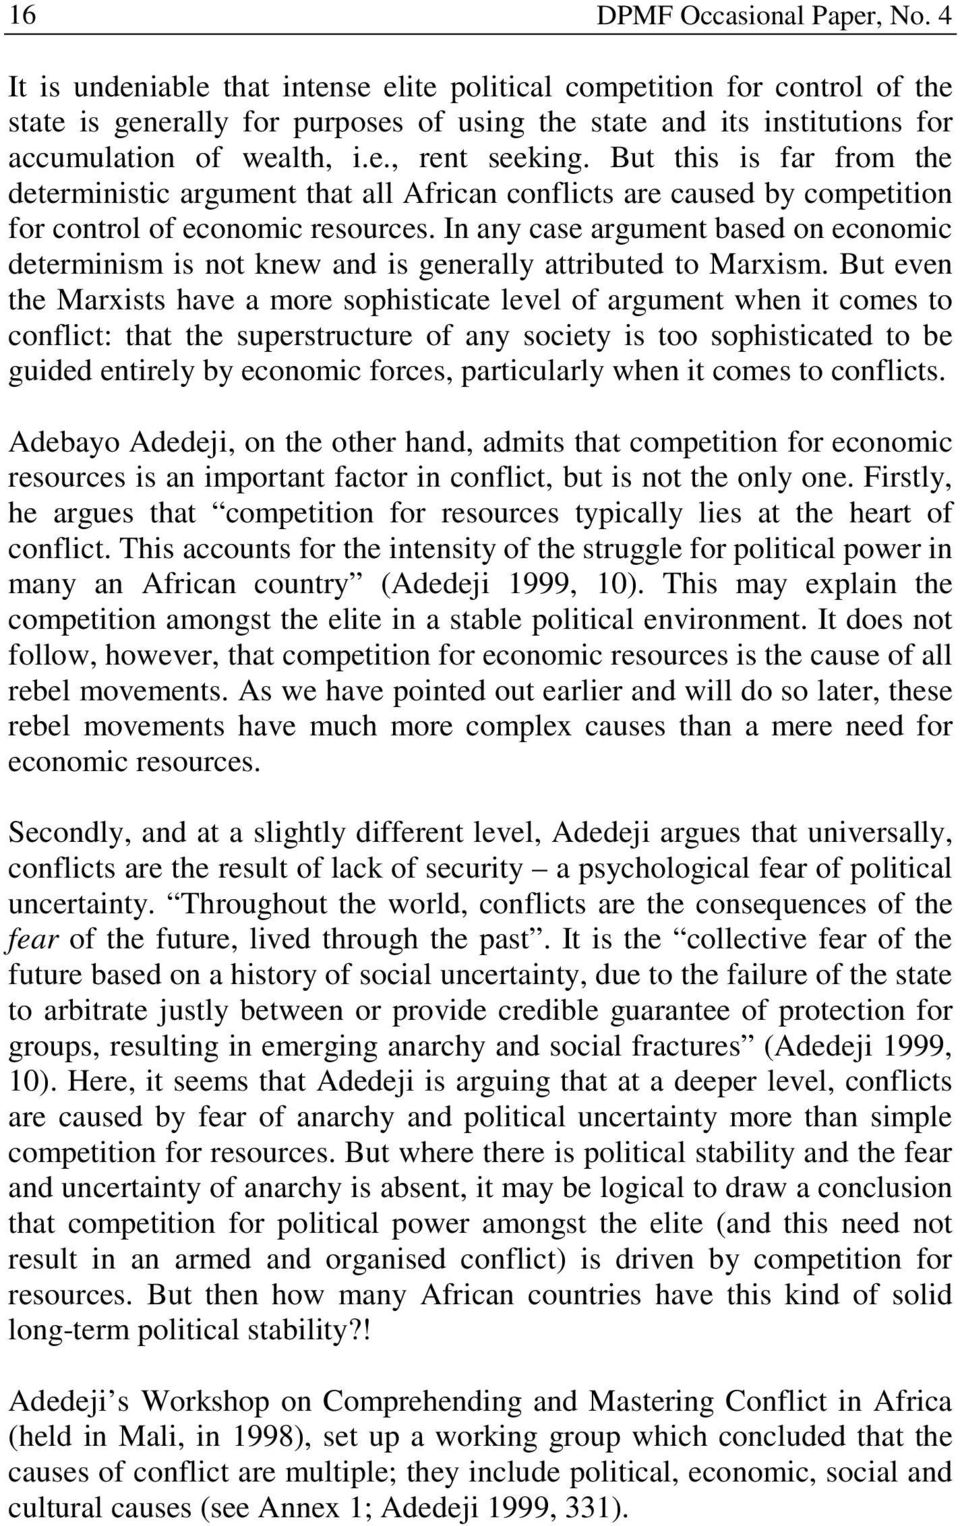 But this is far from the deterministic argument that all African conflicts are caused by competition for control of economic resources.